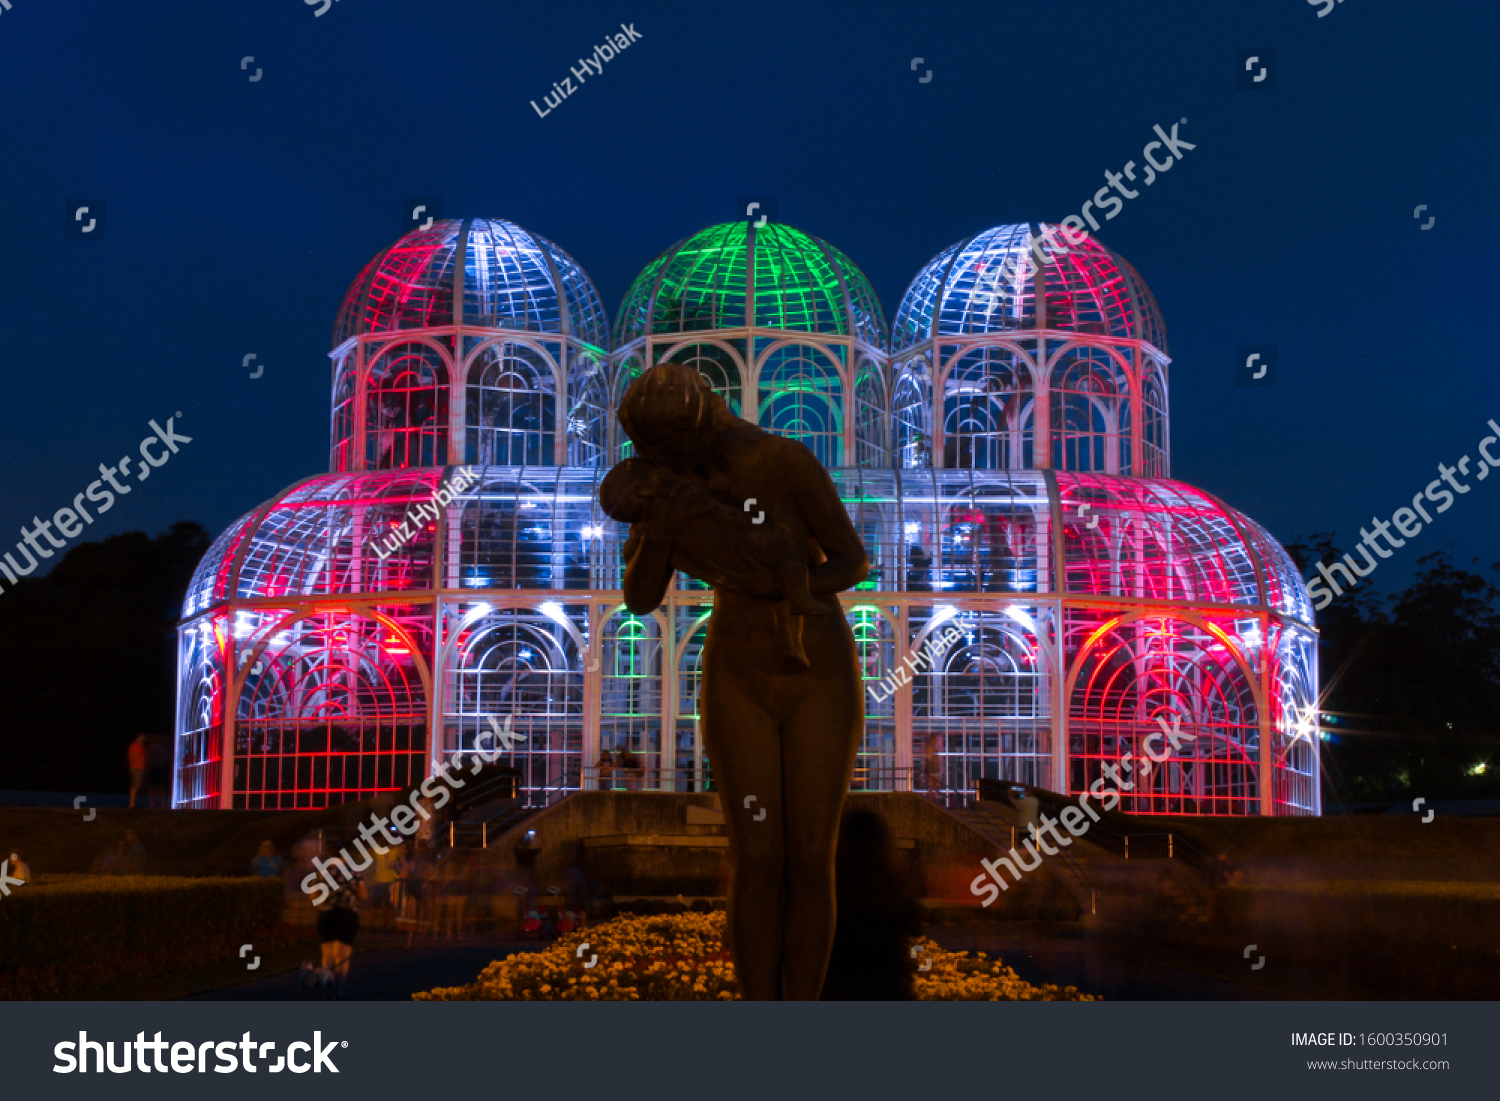 "Curitiba, Paraná, Brazil - December 28, 2019. Sculpture ""Amor Materno"" in Curitiba's Botanical Garden, main greenhouse in the background during the night. Green and red ilumination. Long exposure."